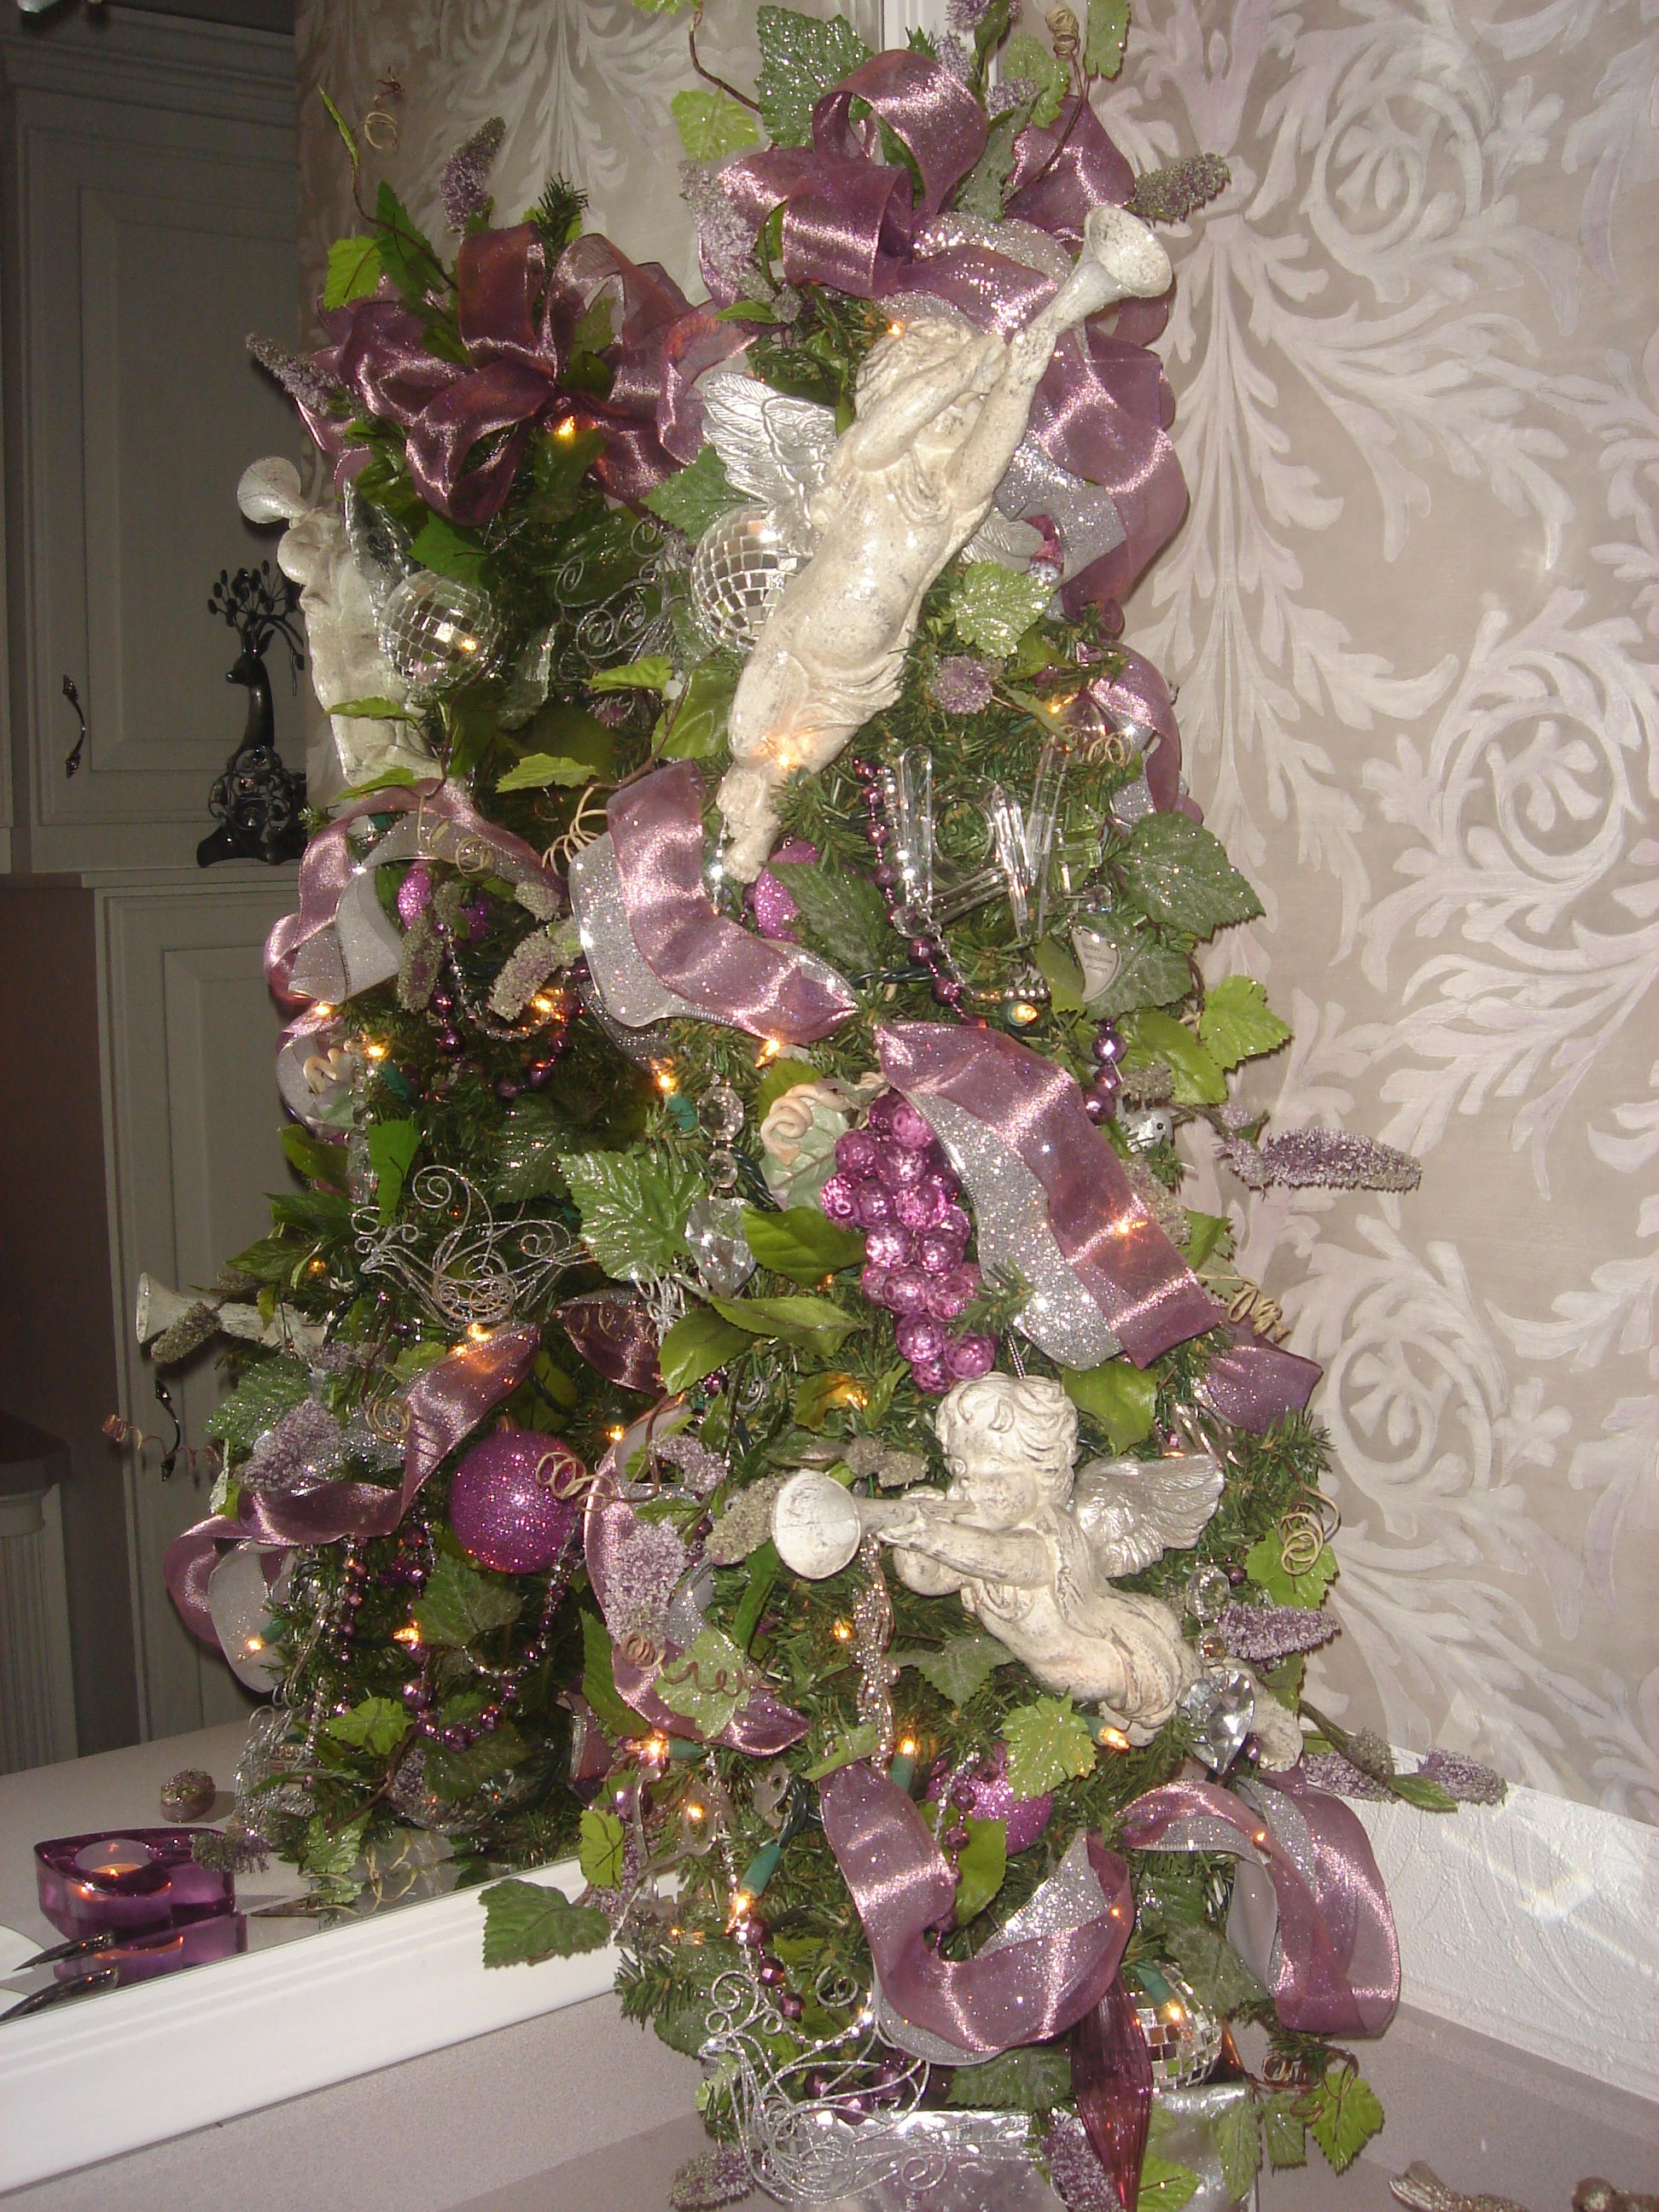 Cherub Christmas tree in colors of purple and silver